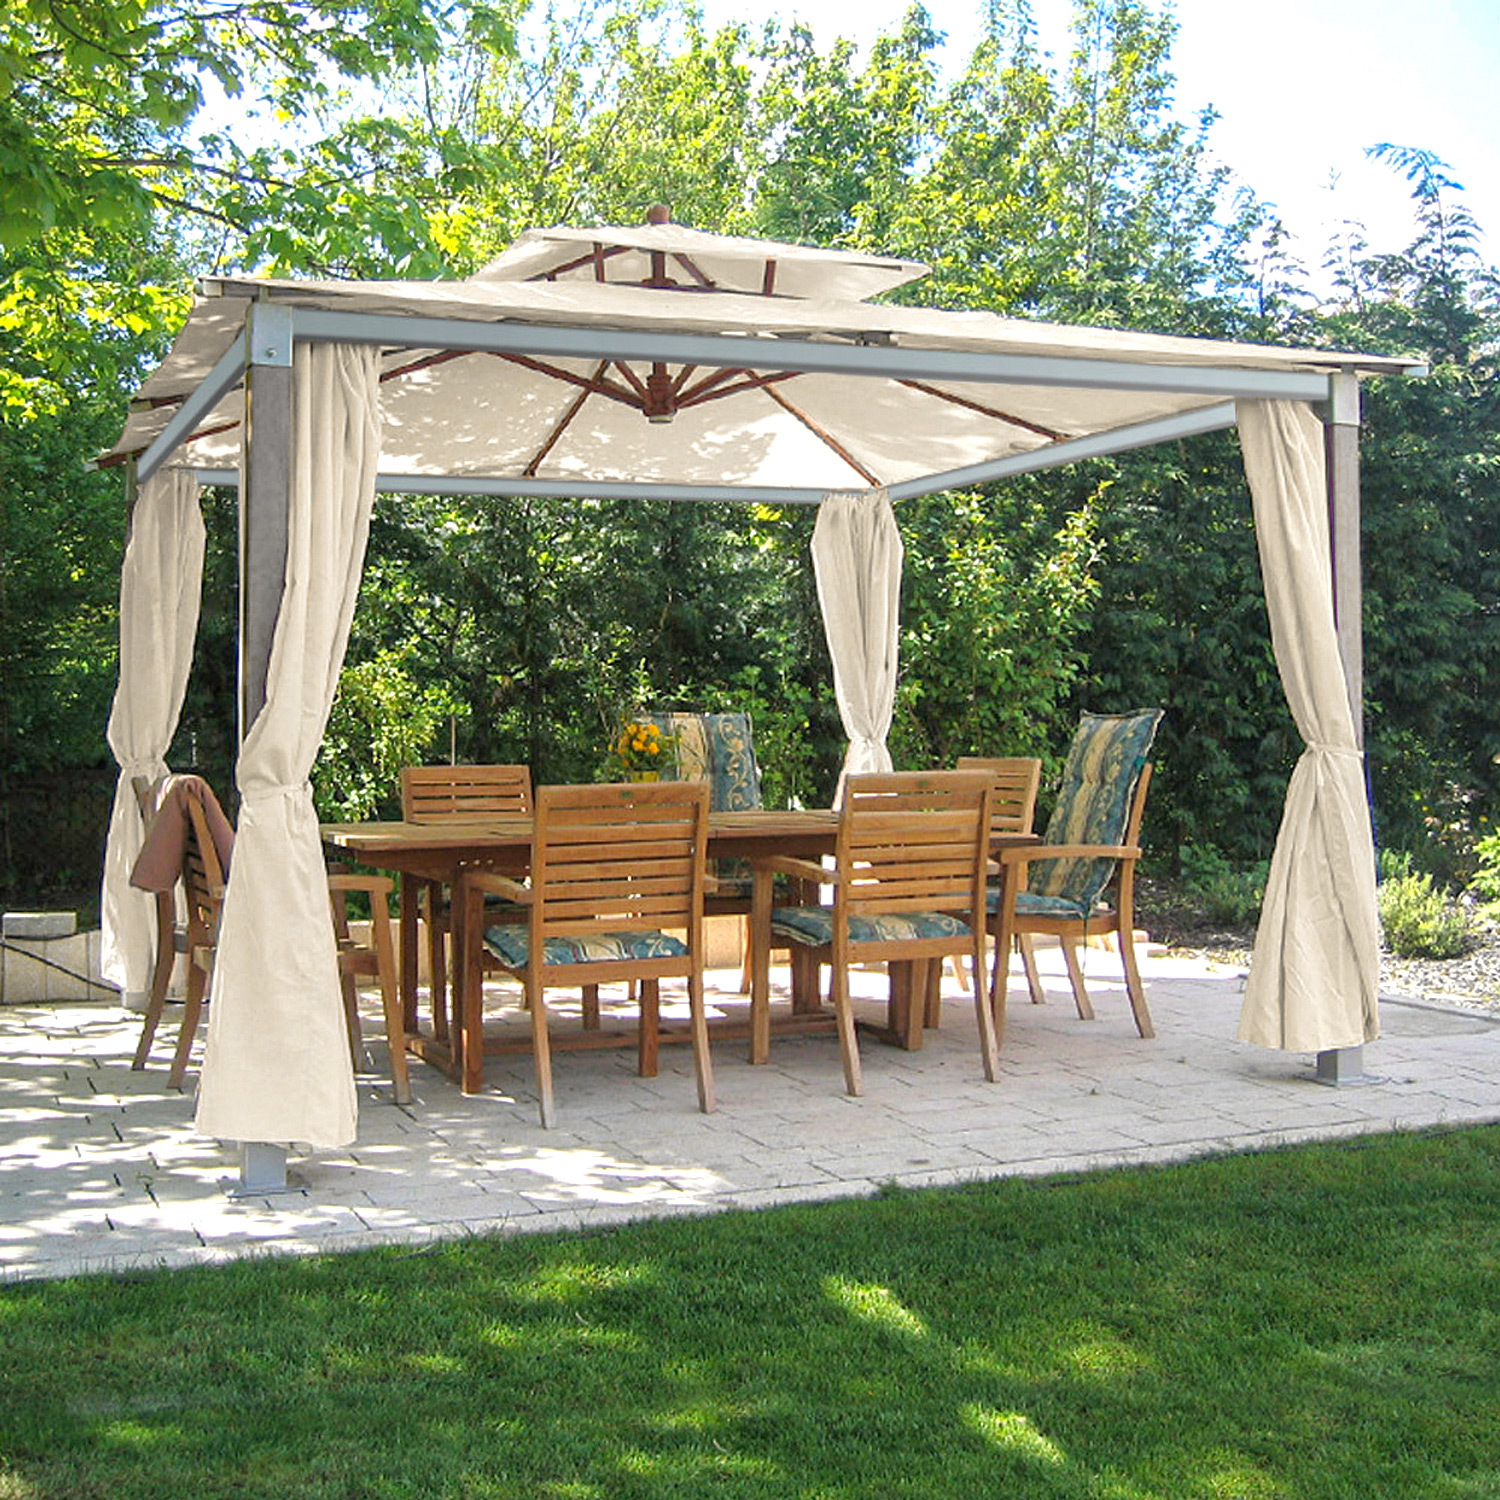 gartenpavillon anndora pavillon 3 6 x 3 6 m partyzelt holz aluminium natural ebay. Black Bedroom Furniture Sets. Home Design Ideas